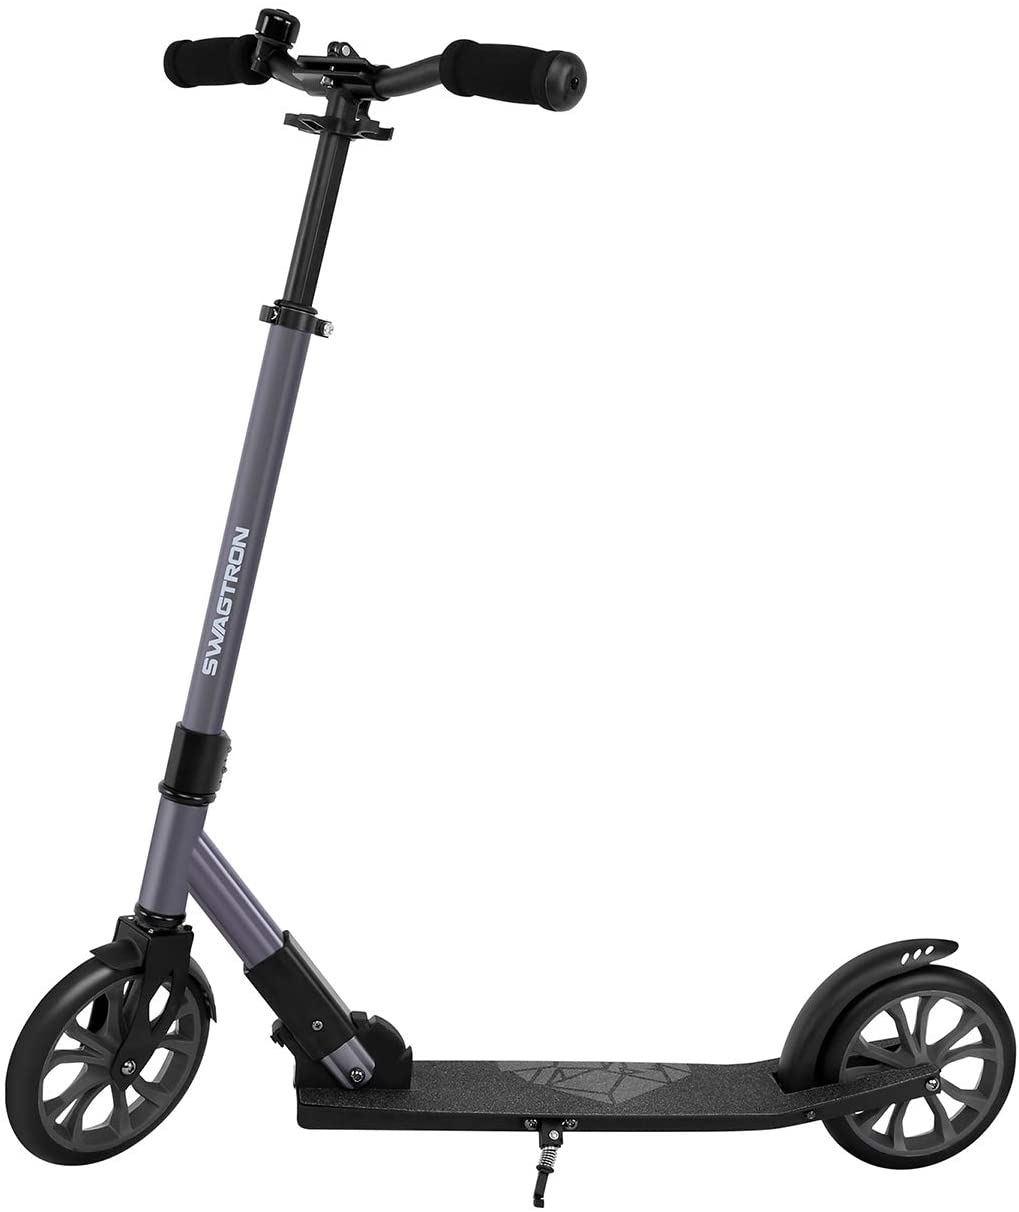 7. Swagtron K8 Titan Commuter Kick Scooter